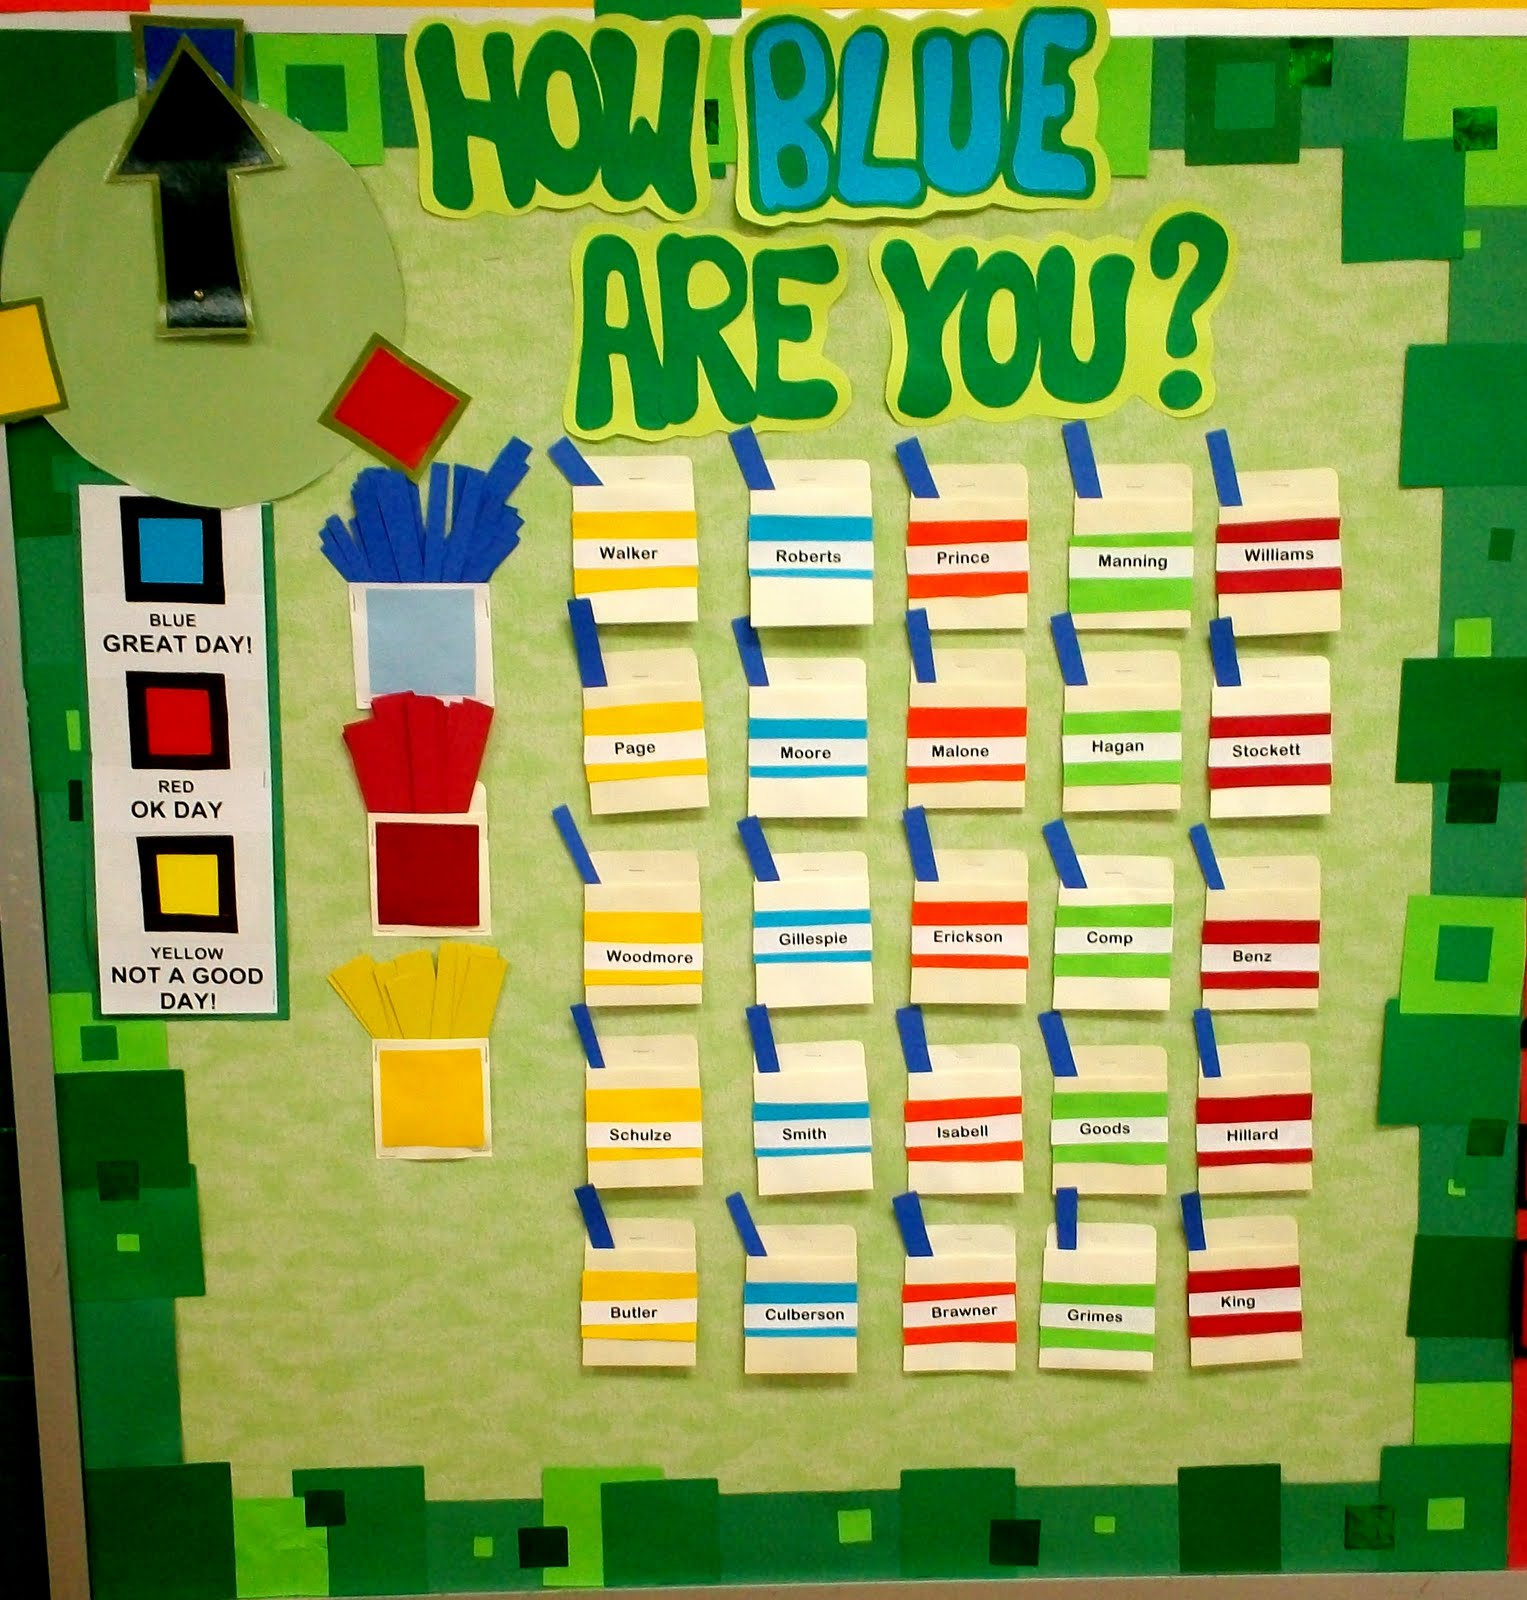 Good Behavior Bulletin Board Ideas http://artwithmre.blogspot.com/2011/08/art-room-bulletin-boards-displays-2011_12.html